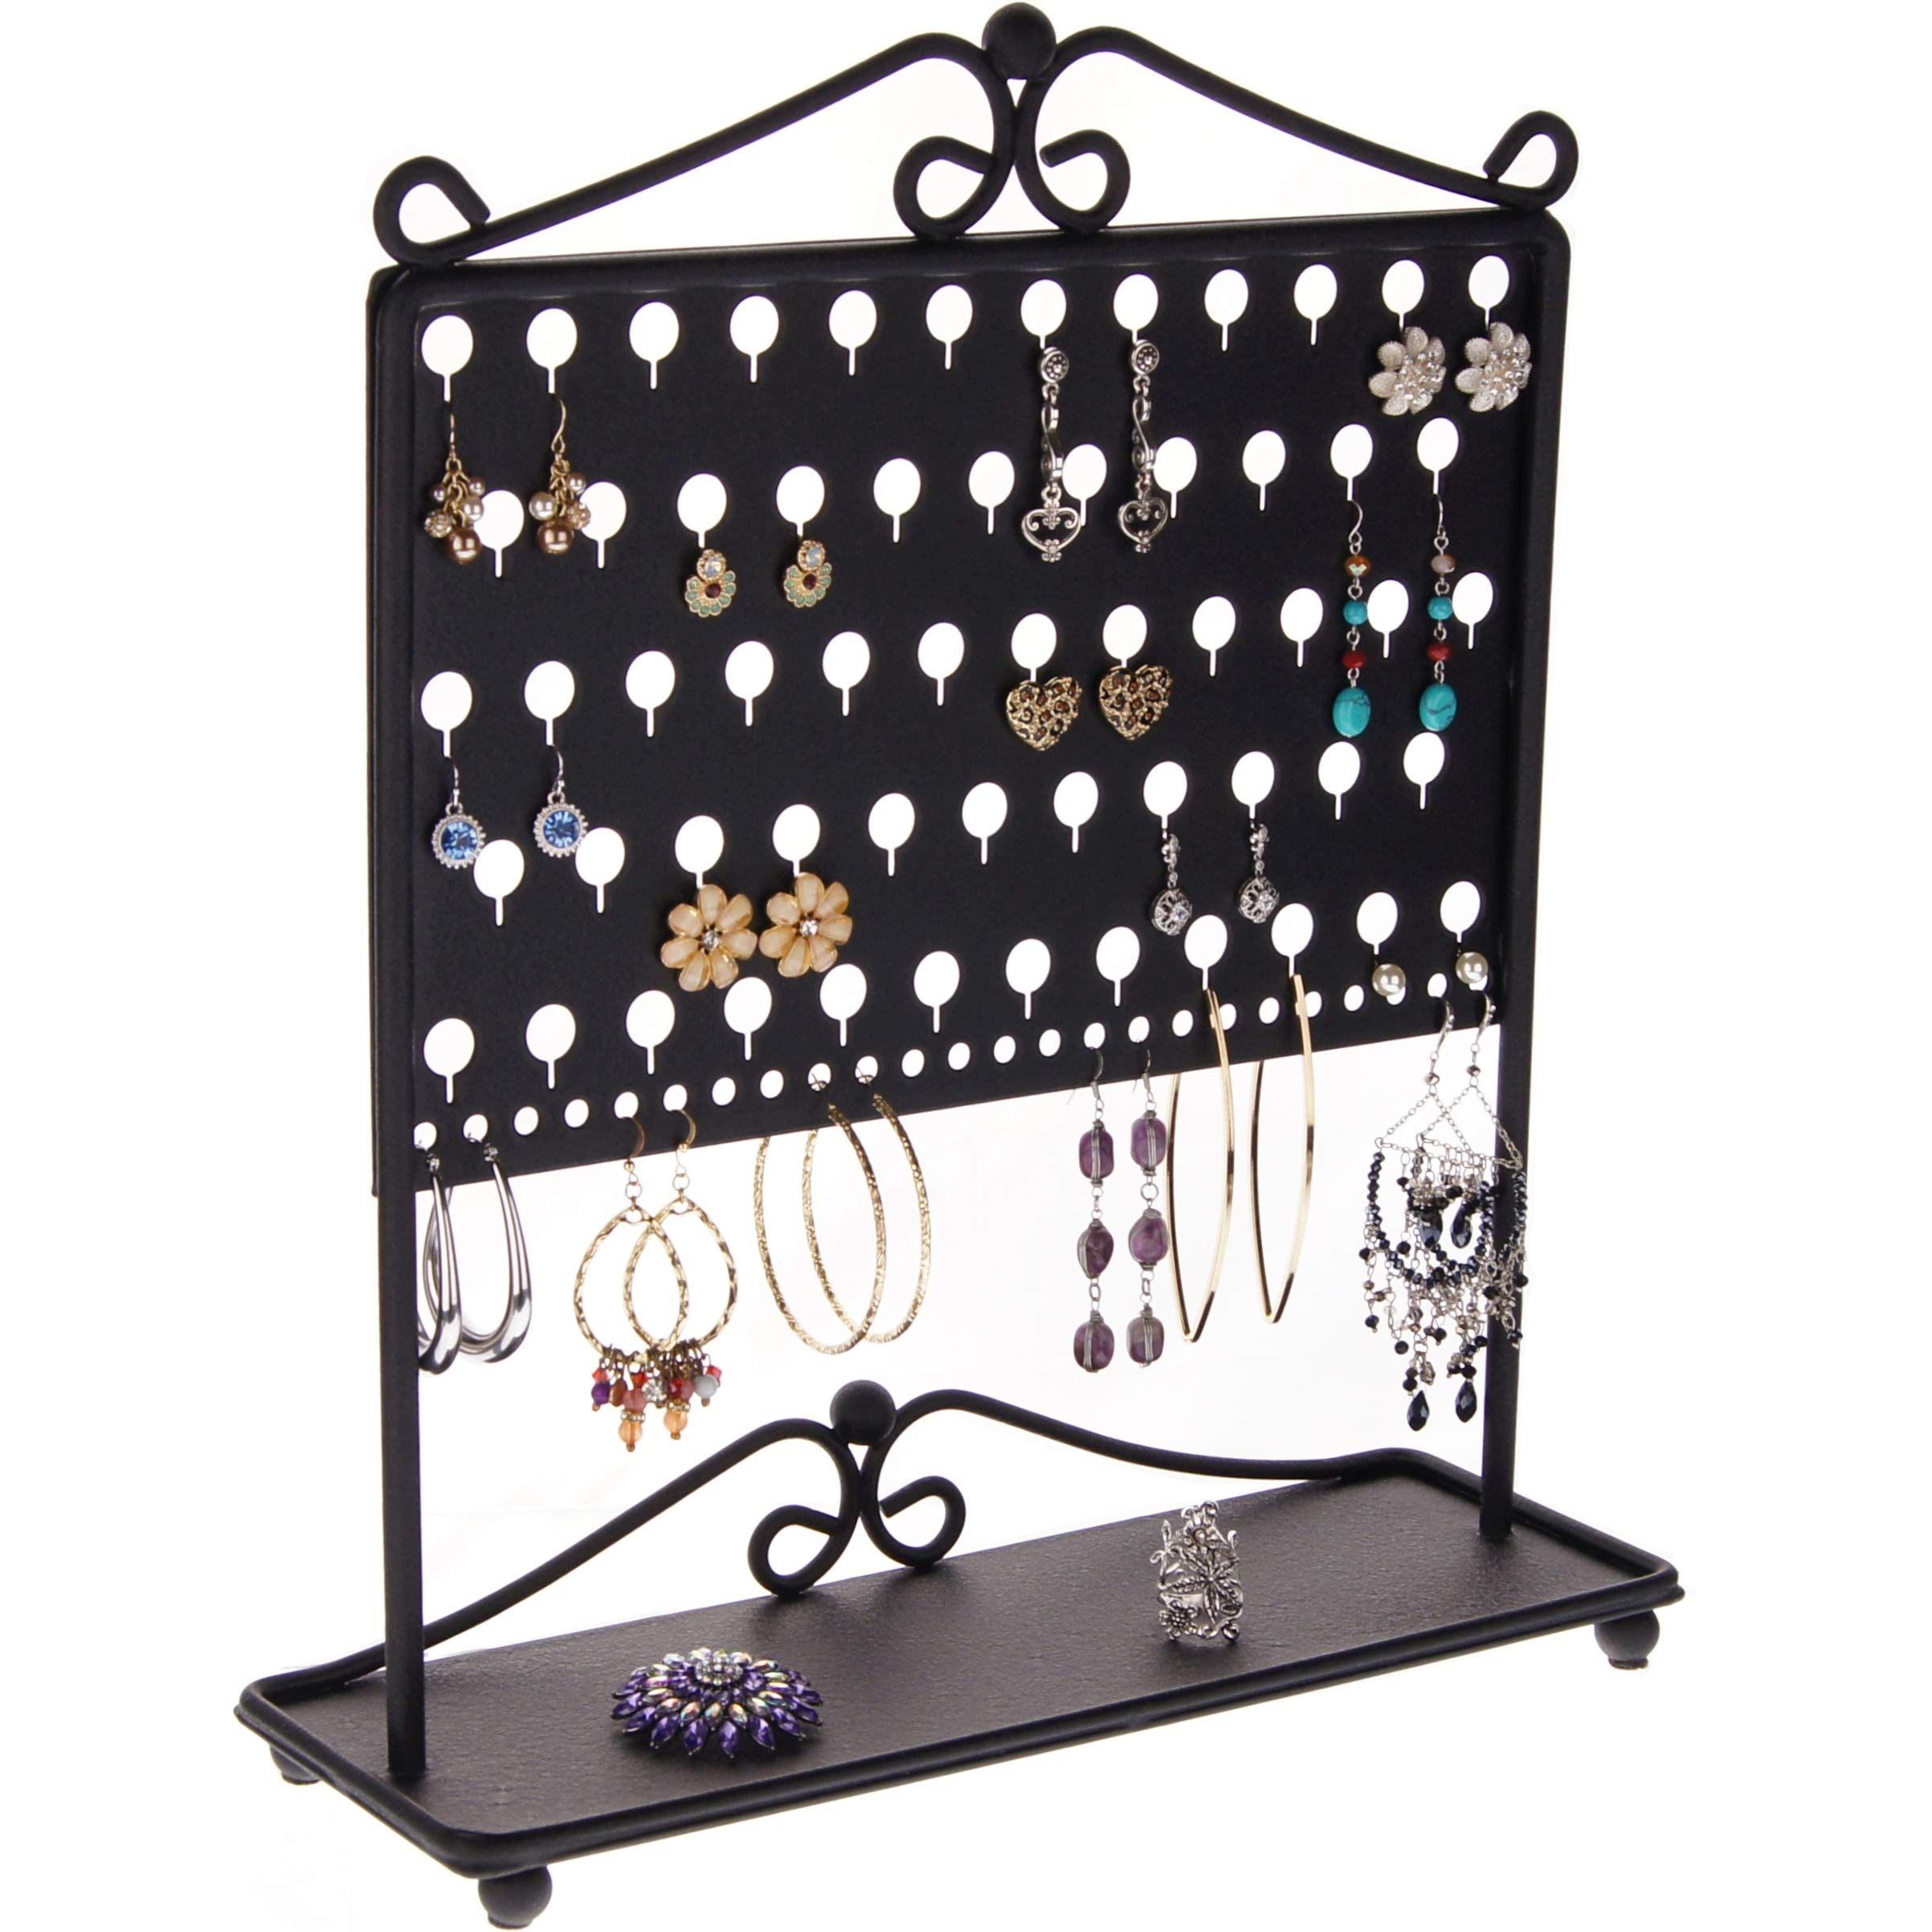 Angelynn's Stud Earring Holder Organizer Tree Stand Display Hanging Jewelry Storage Rack, Ginger Black